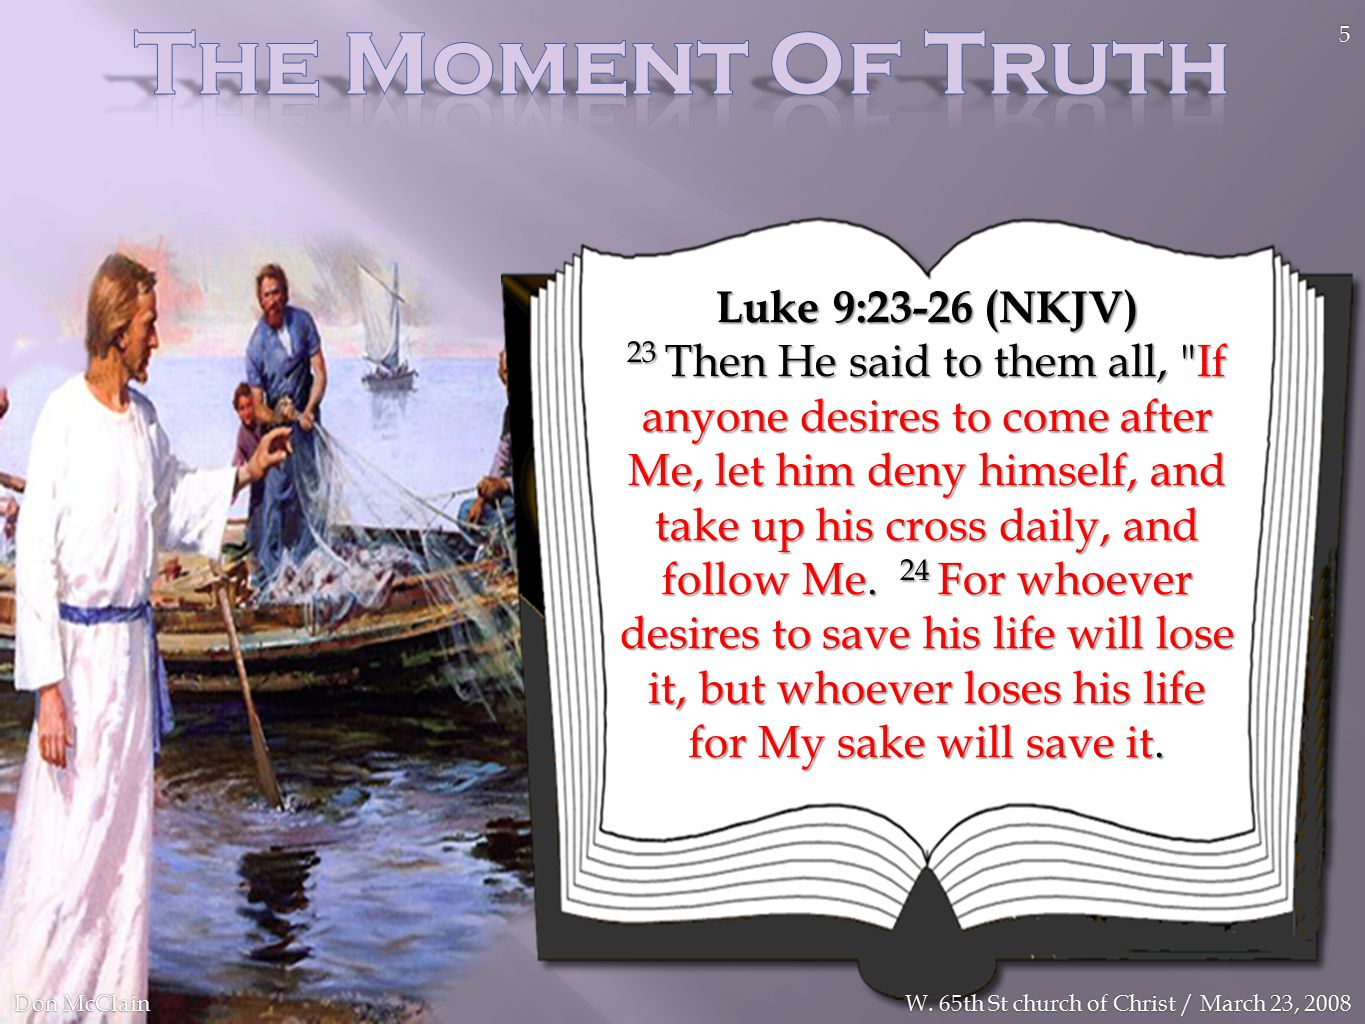 Luke 9:23-26 (NKJV) 23 Then He said to them all, If anyone desires to come after Me, let him deny himself, and take up his cross daily, and follow Me.